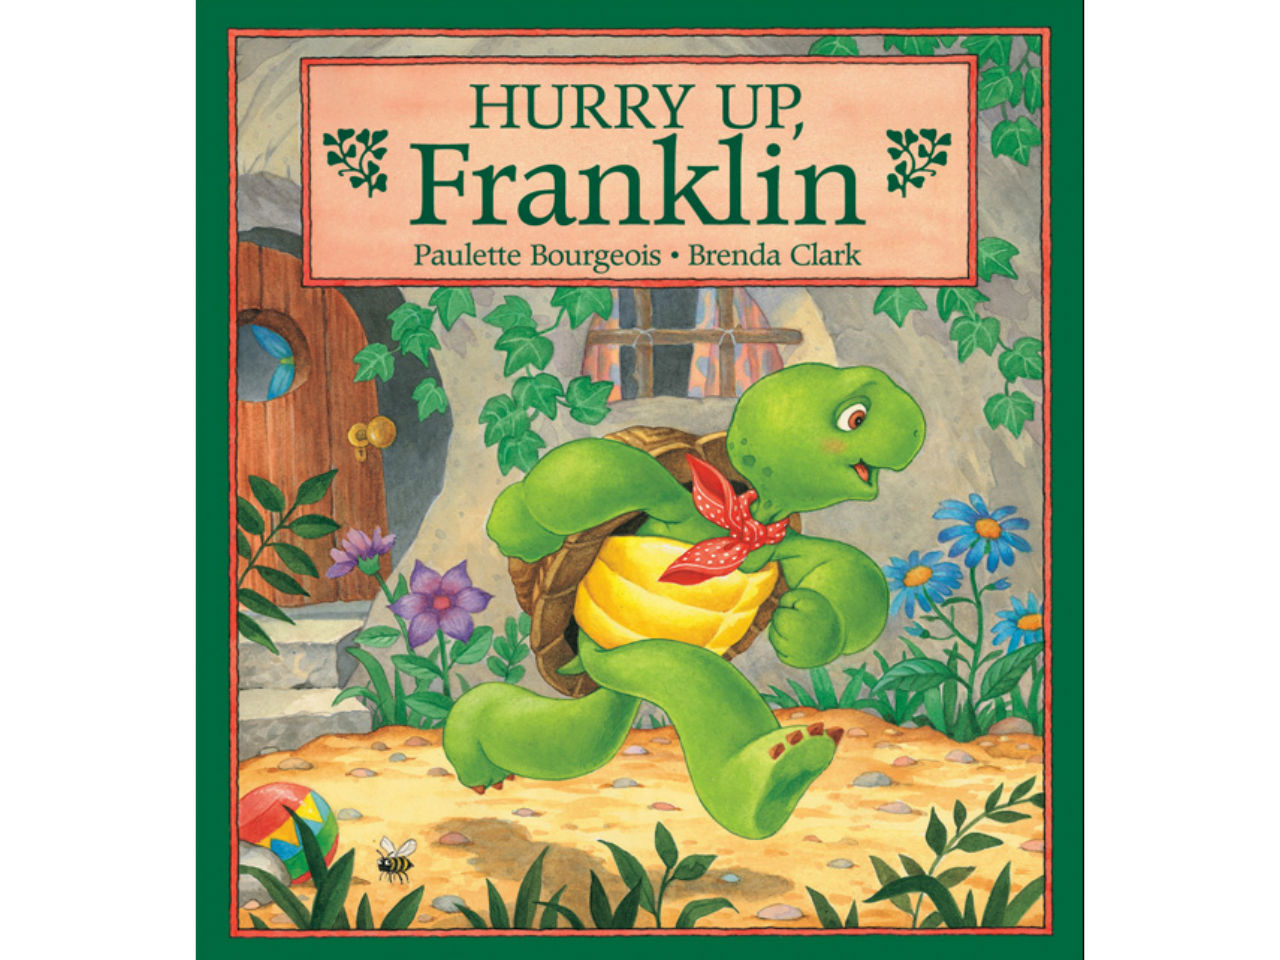 Book cover for Hurry Up Franklin. Franklin the turtle is pictured running.